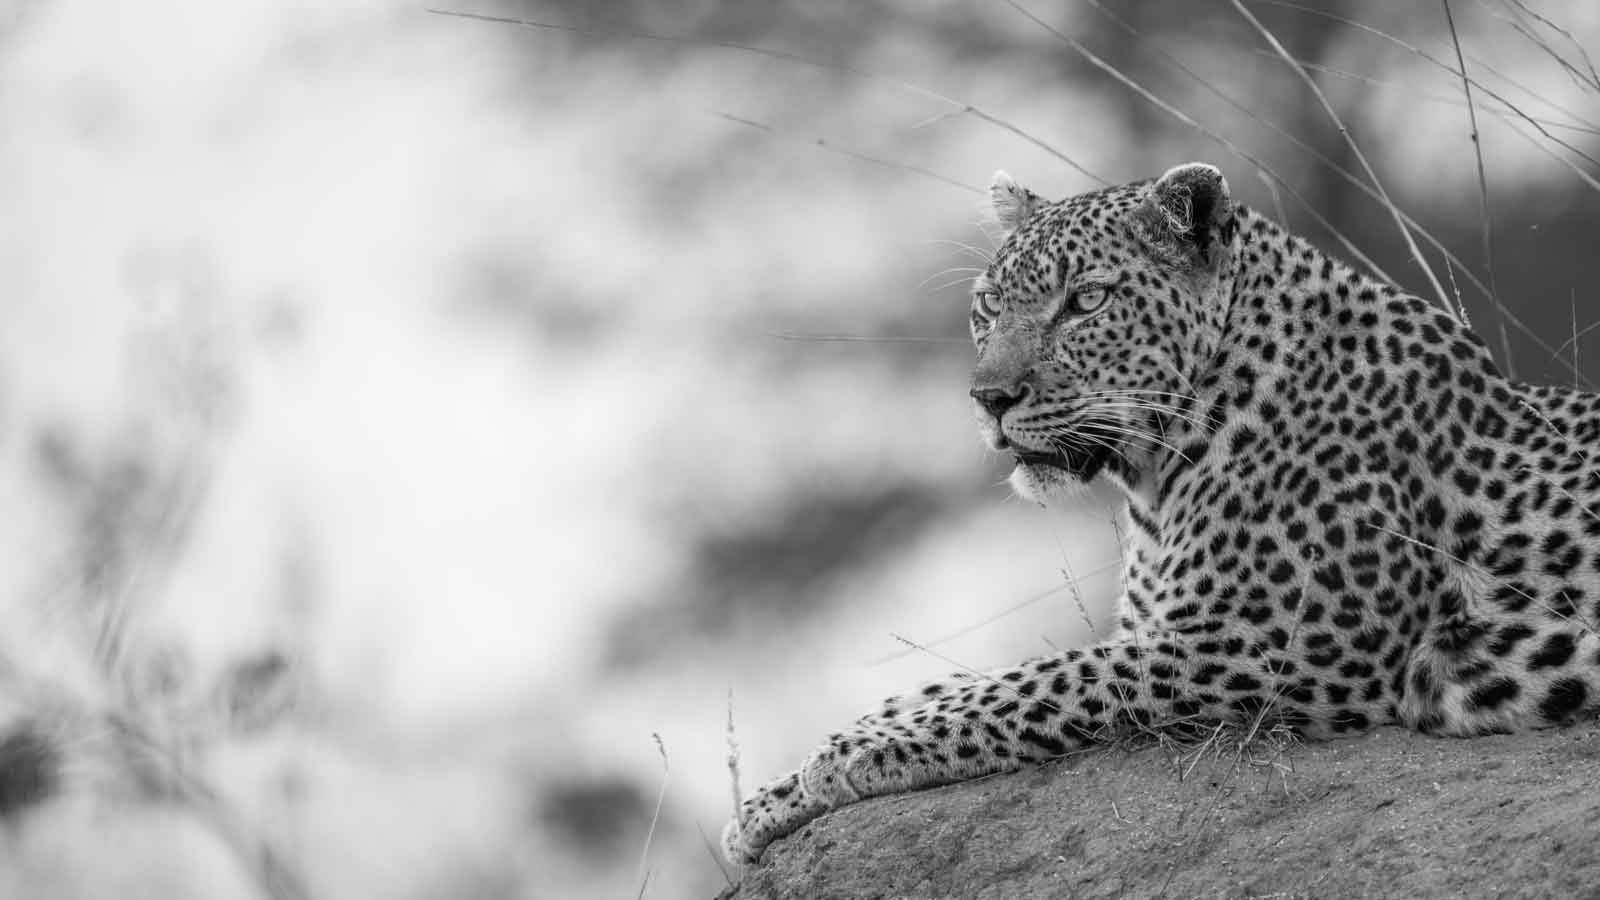 Black and White Images of Big Cats and Wild Dogs, Black and White Images of Big Cats and Wild Dogs